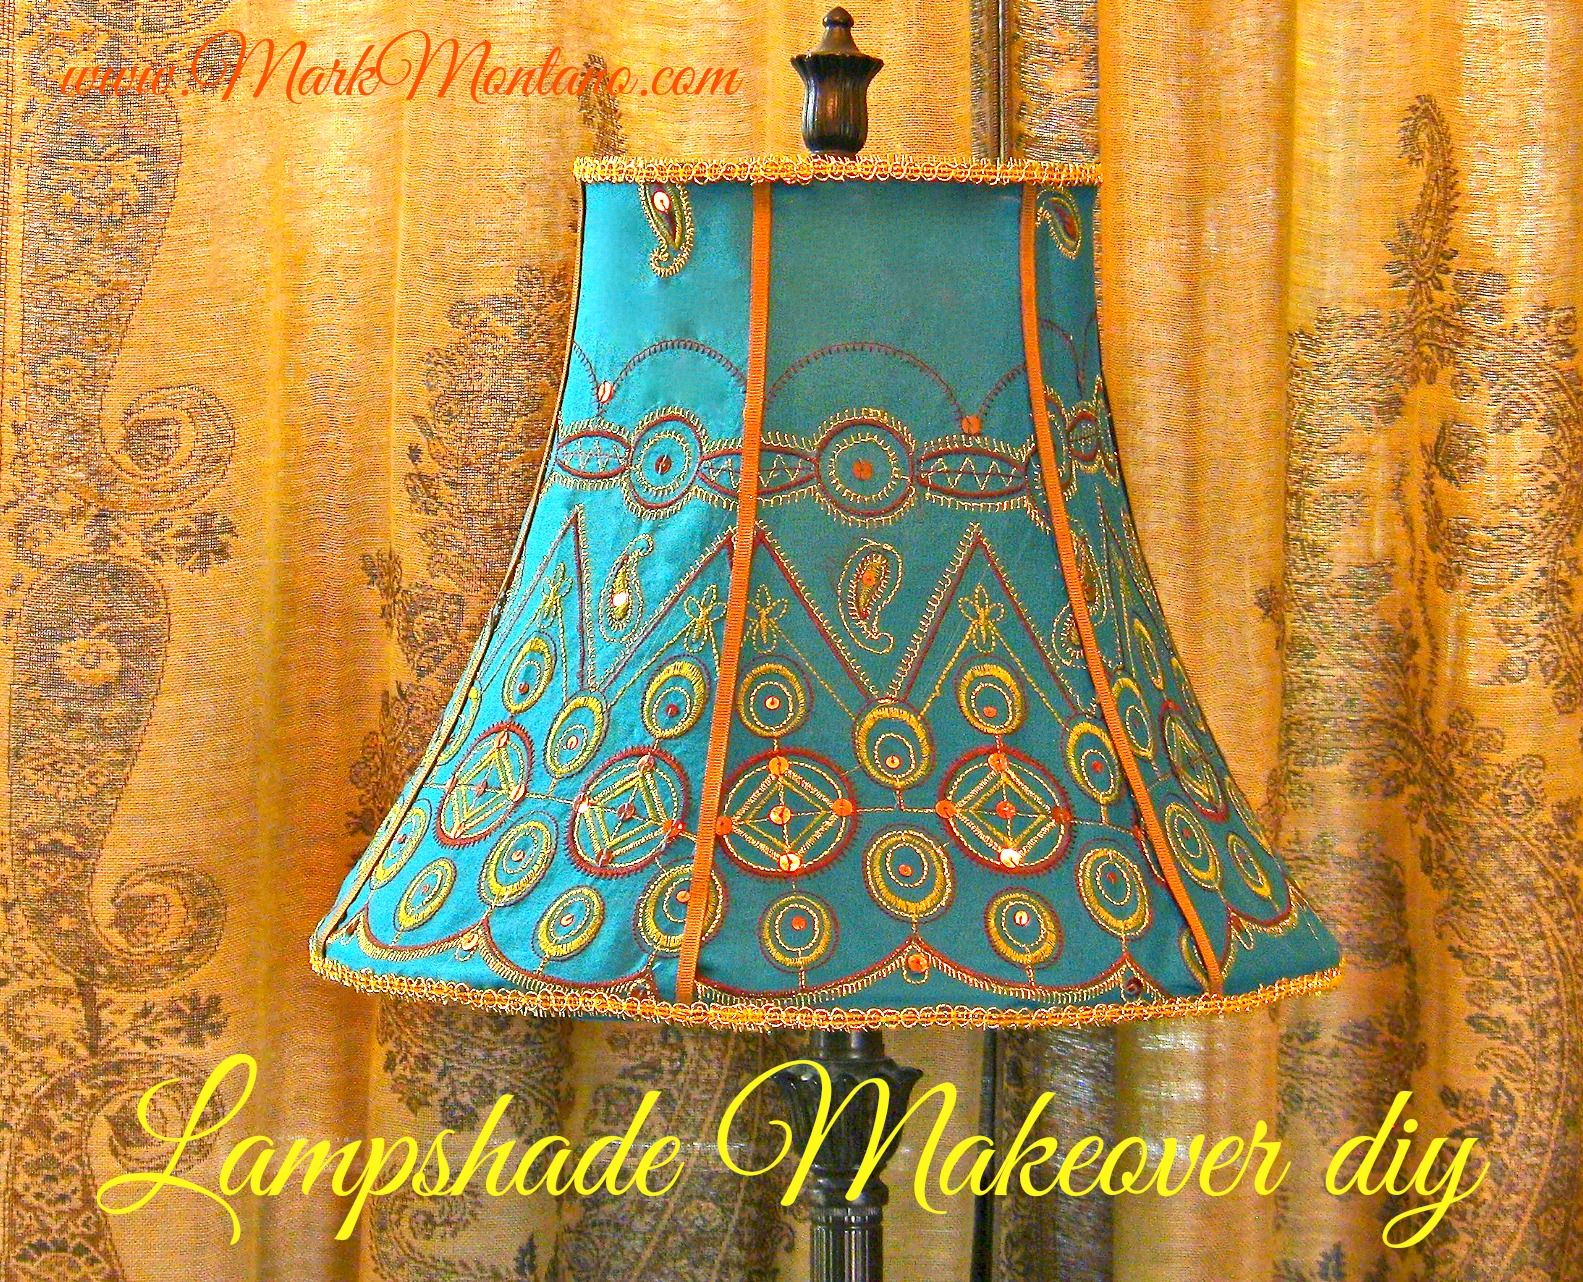 Cover a fancy lampshade with just a glue gun and 1 yard of fabric are beat up old lampshades constantly catching your eye at thrift stores and flea markets rescue and revive those metal framed finds with this lampshade mozeypictures Gallery